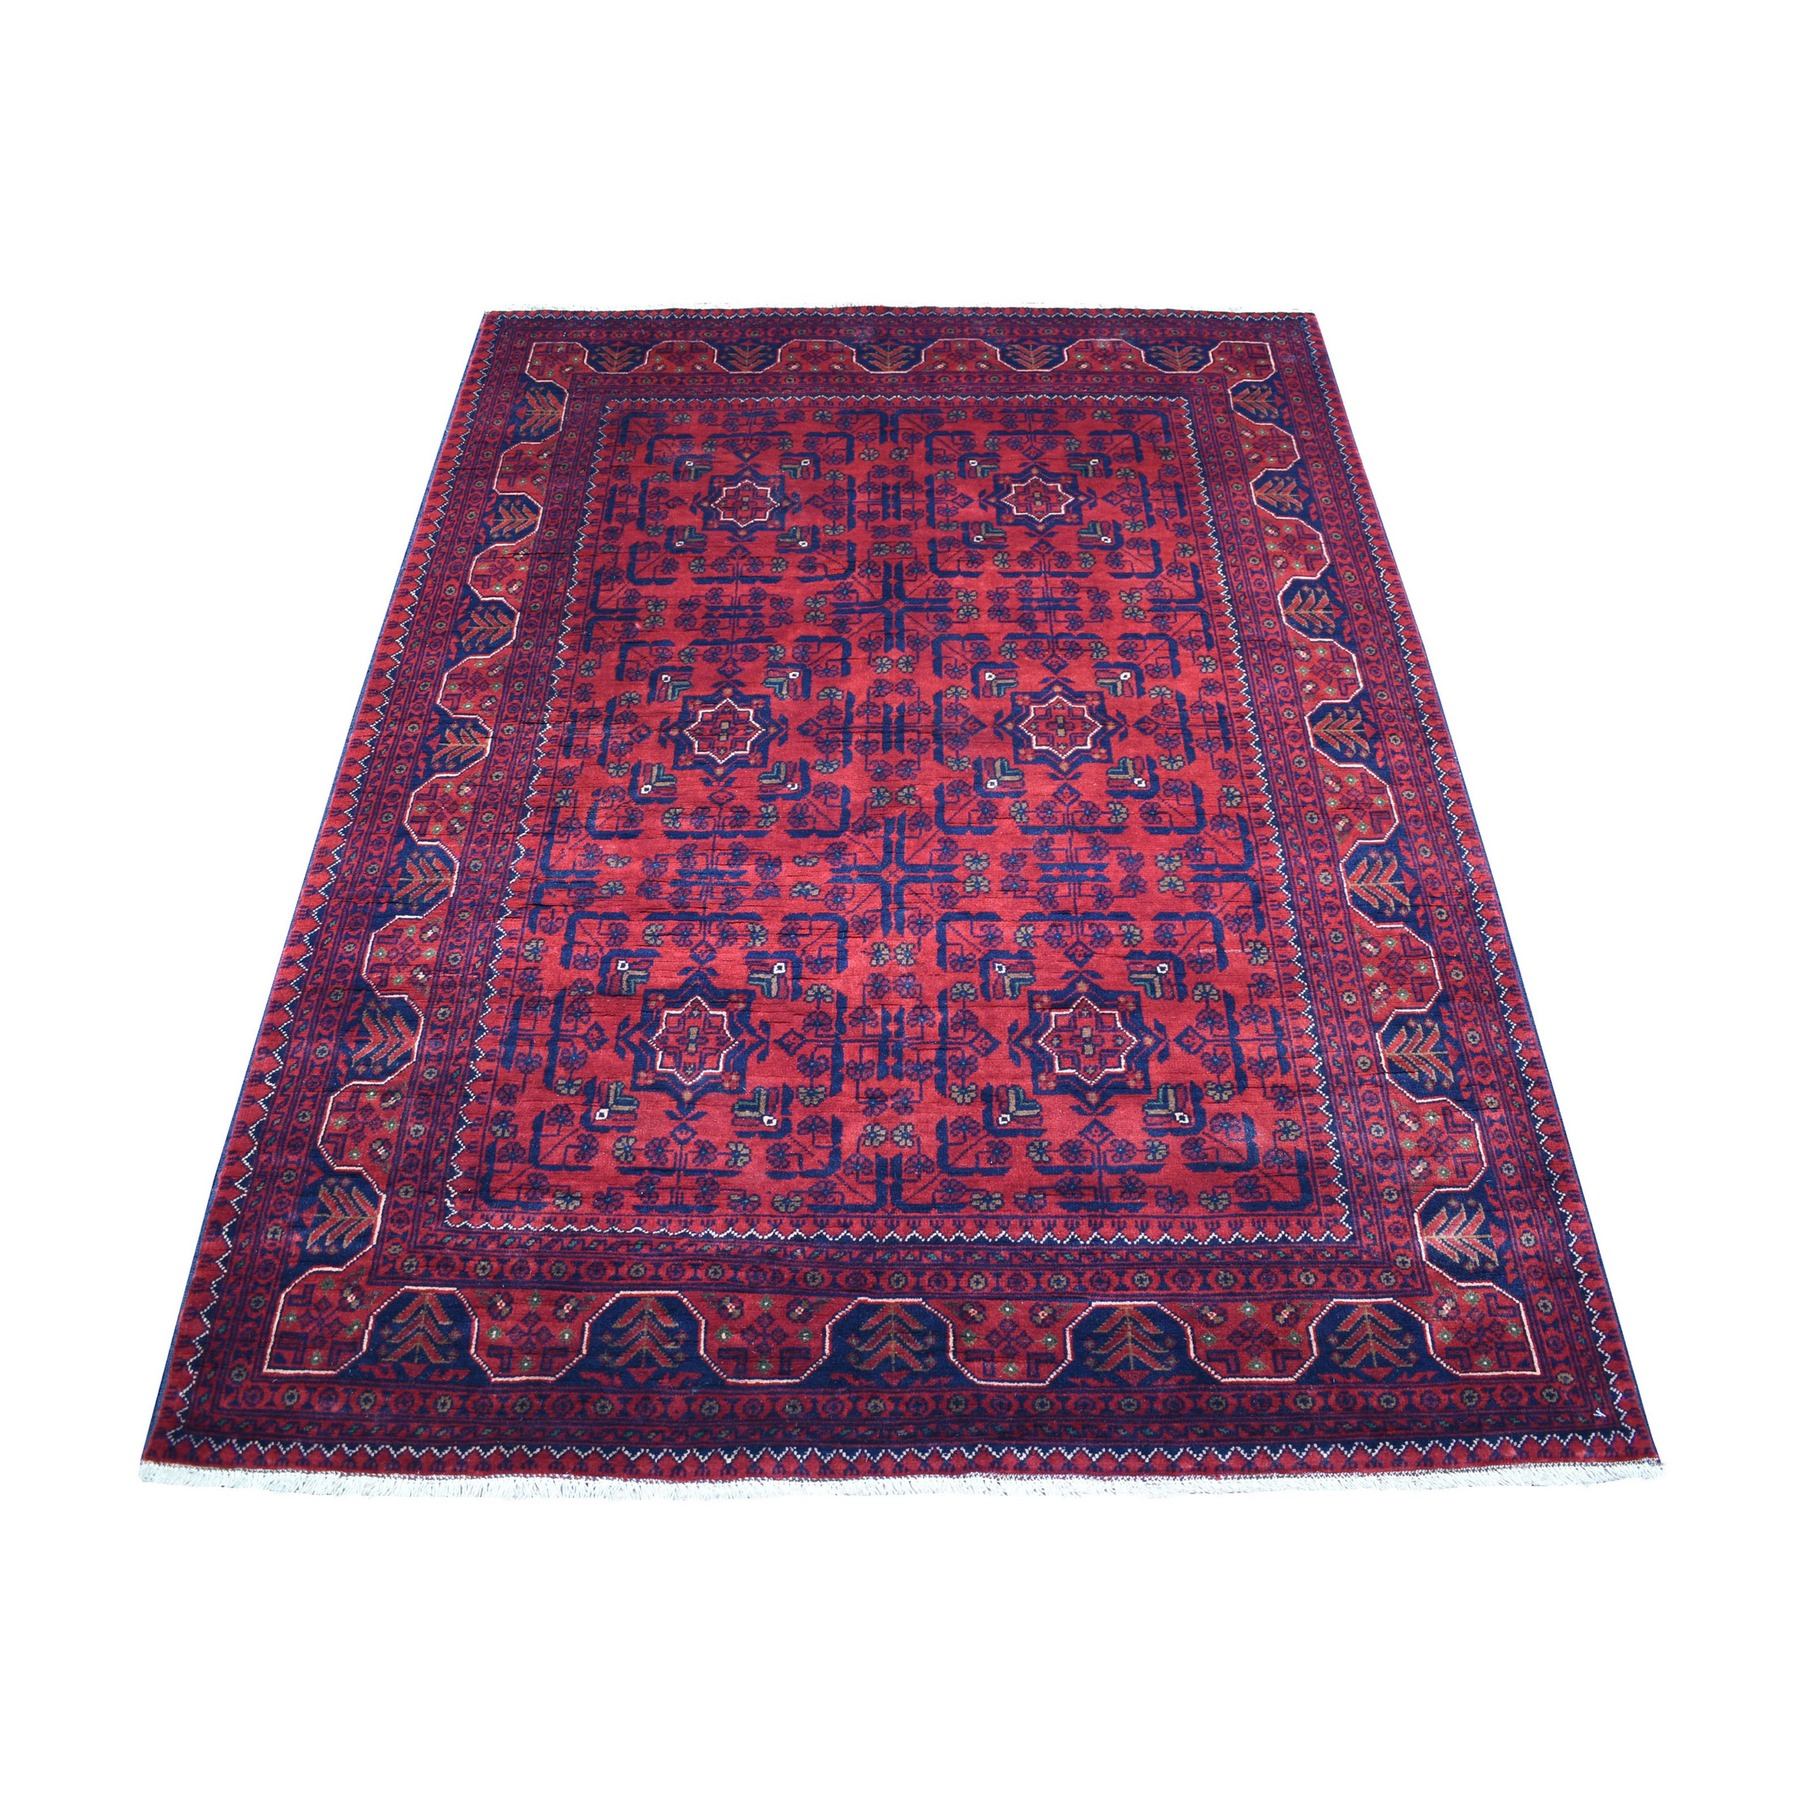 Nomadic And Village Collection Hand Knotted Red Rug No: 1136144